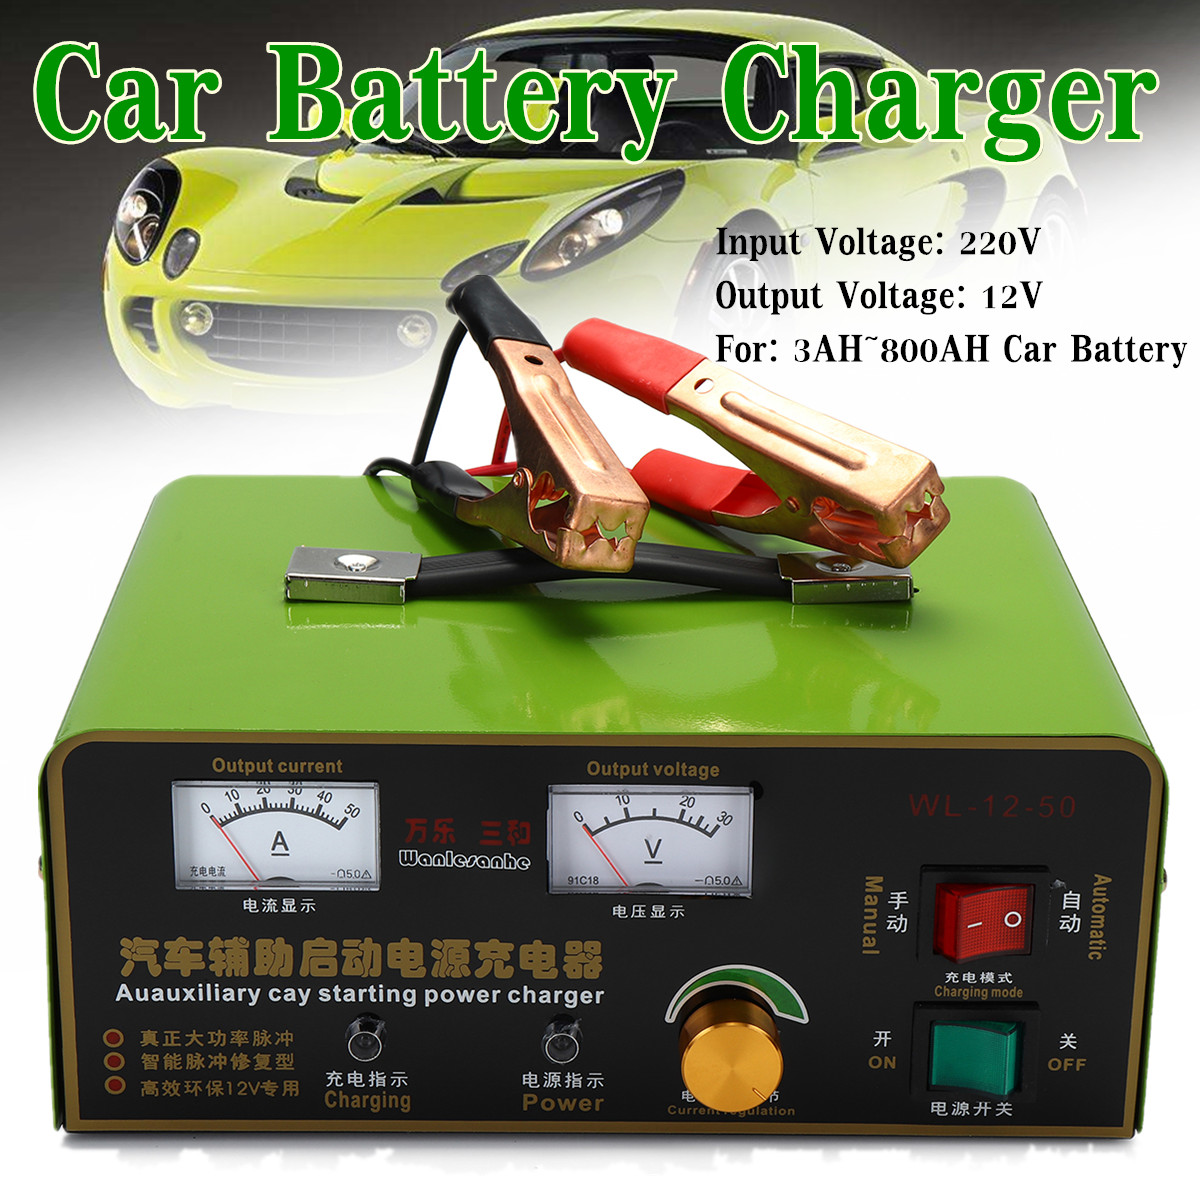 220V 12V 50A 120W US Plug Car Battery Charger Full Automatic 3-800AH Intelligent Pulse Repair Constant Current/Voltage PWM 220v 12v car battery charger 50a 120w us plug full automatic 3 800ah intelligent pulse repair constant current voltage pwm